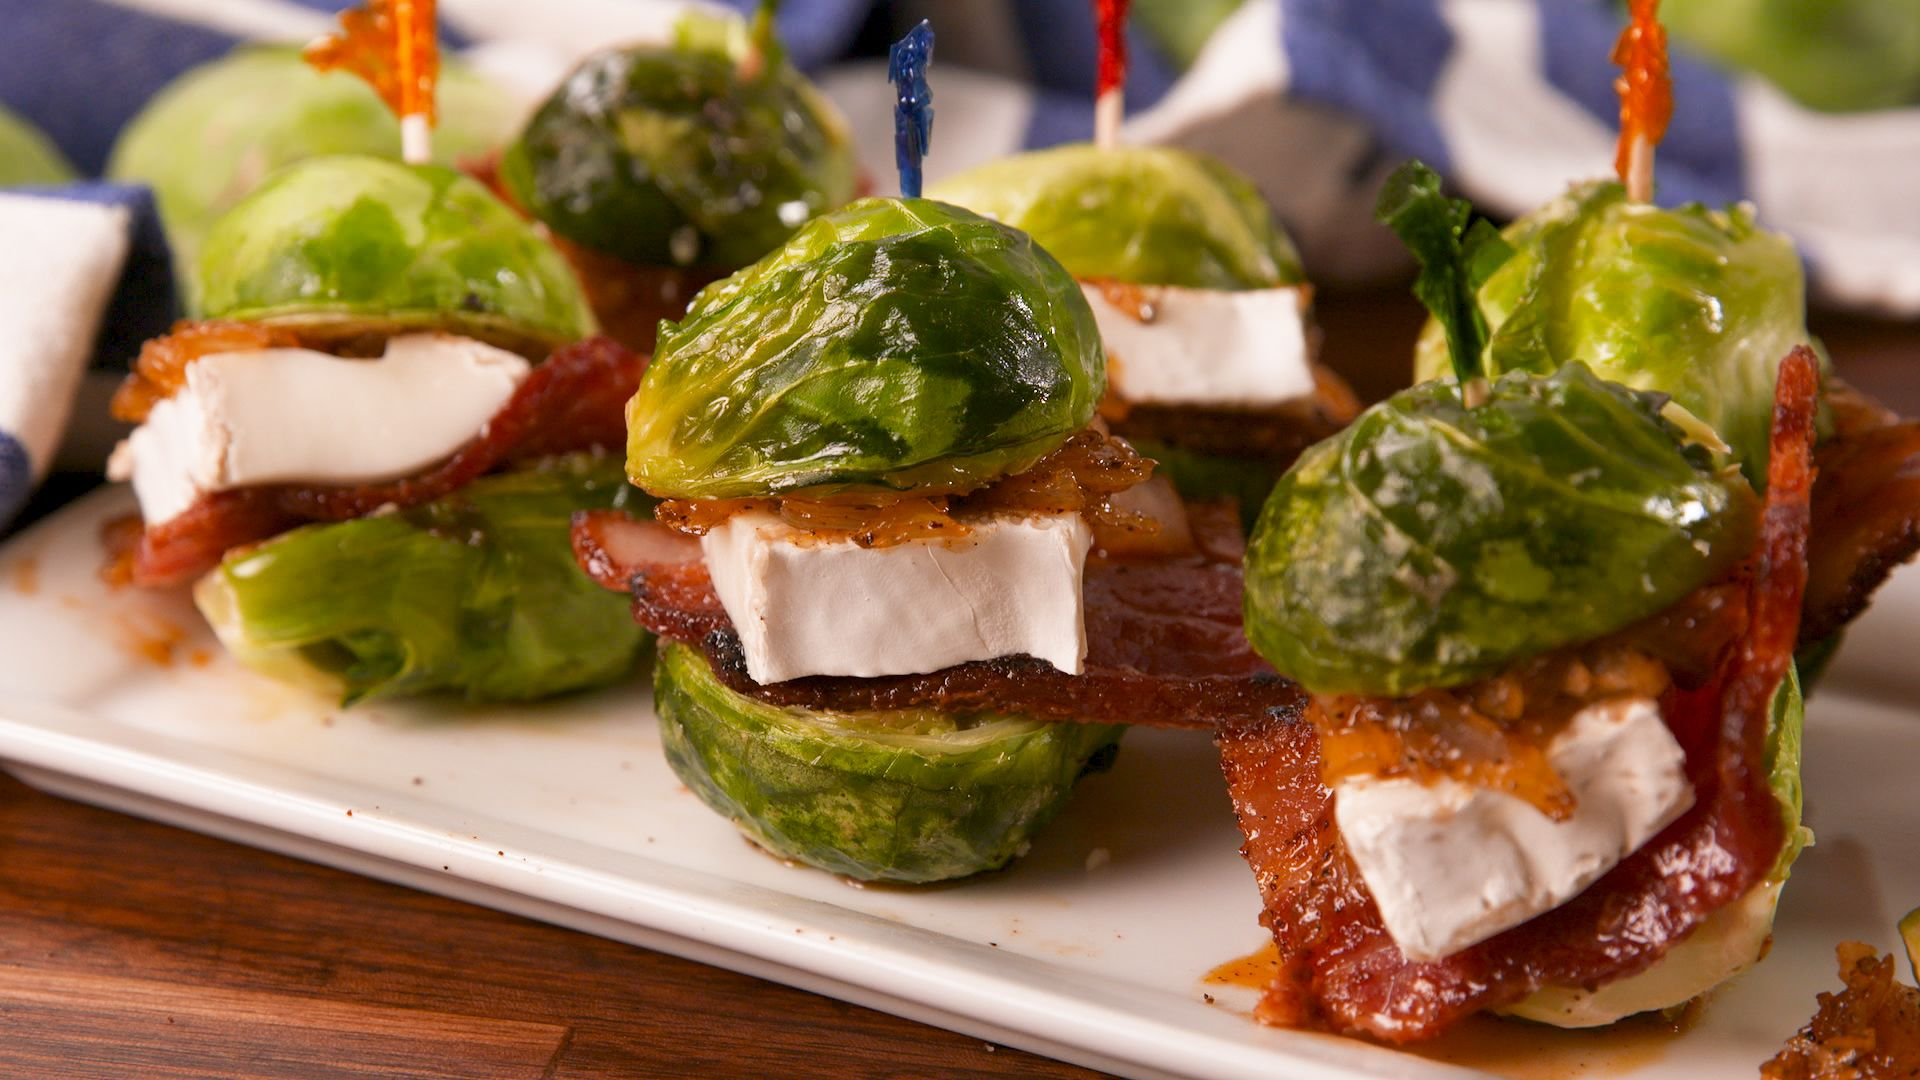 These Brie-Filled Brussels Sprout Sliders Are What Your Life Is Missing